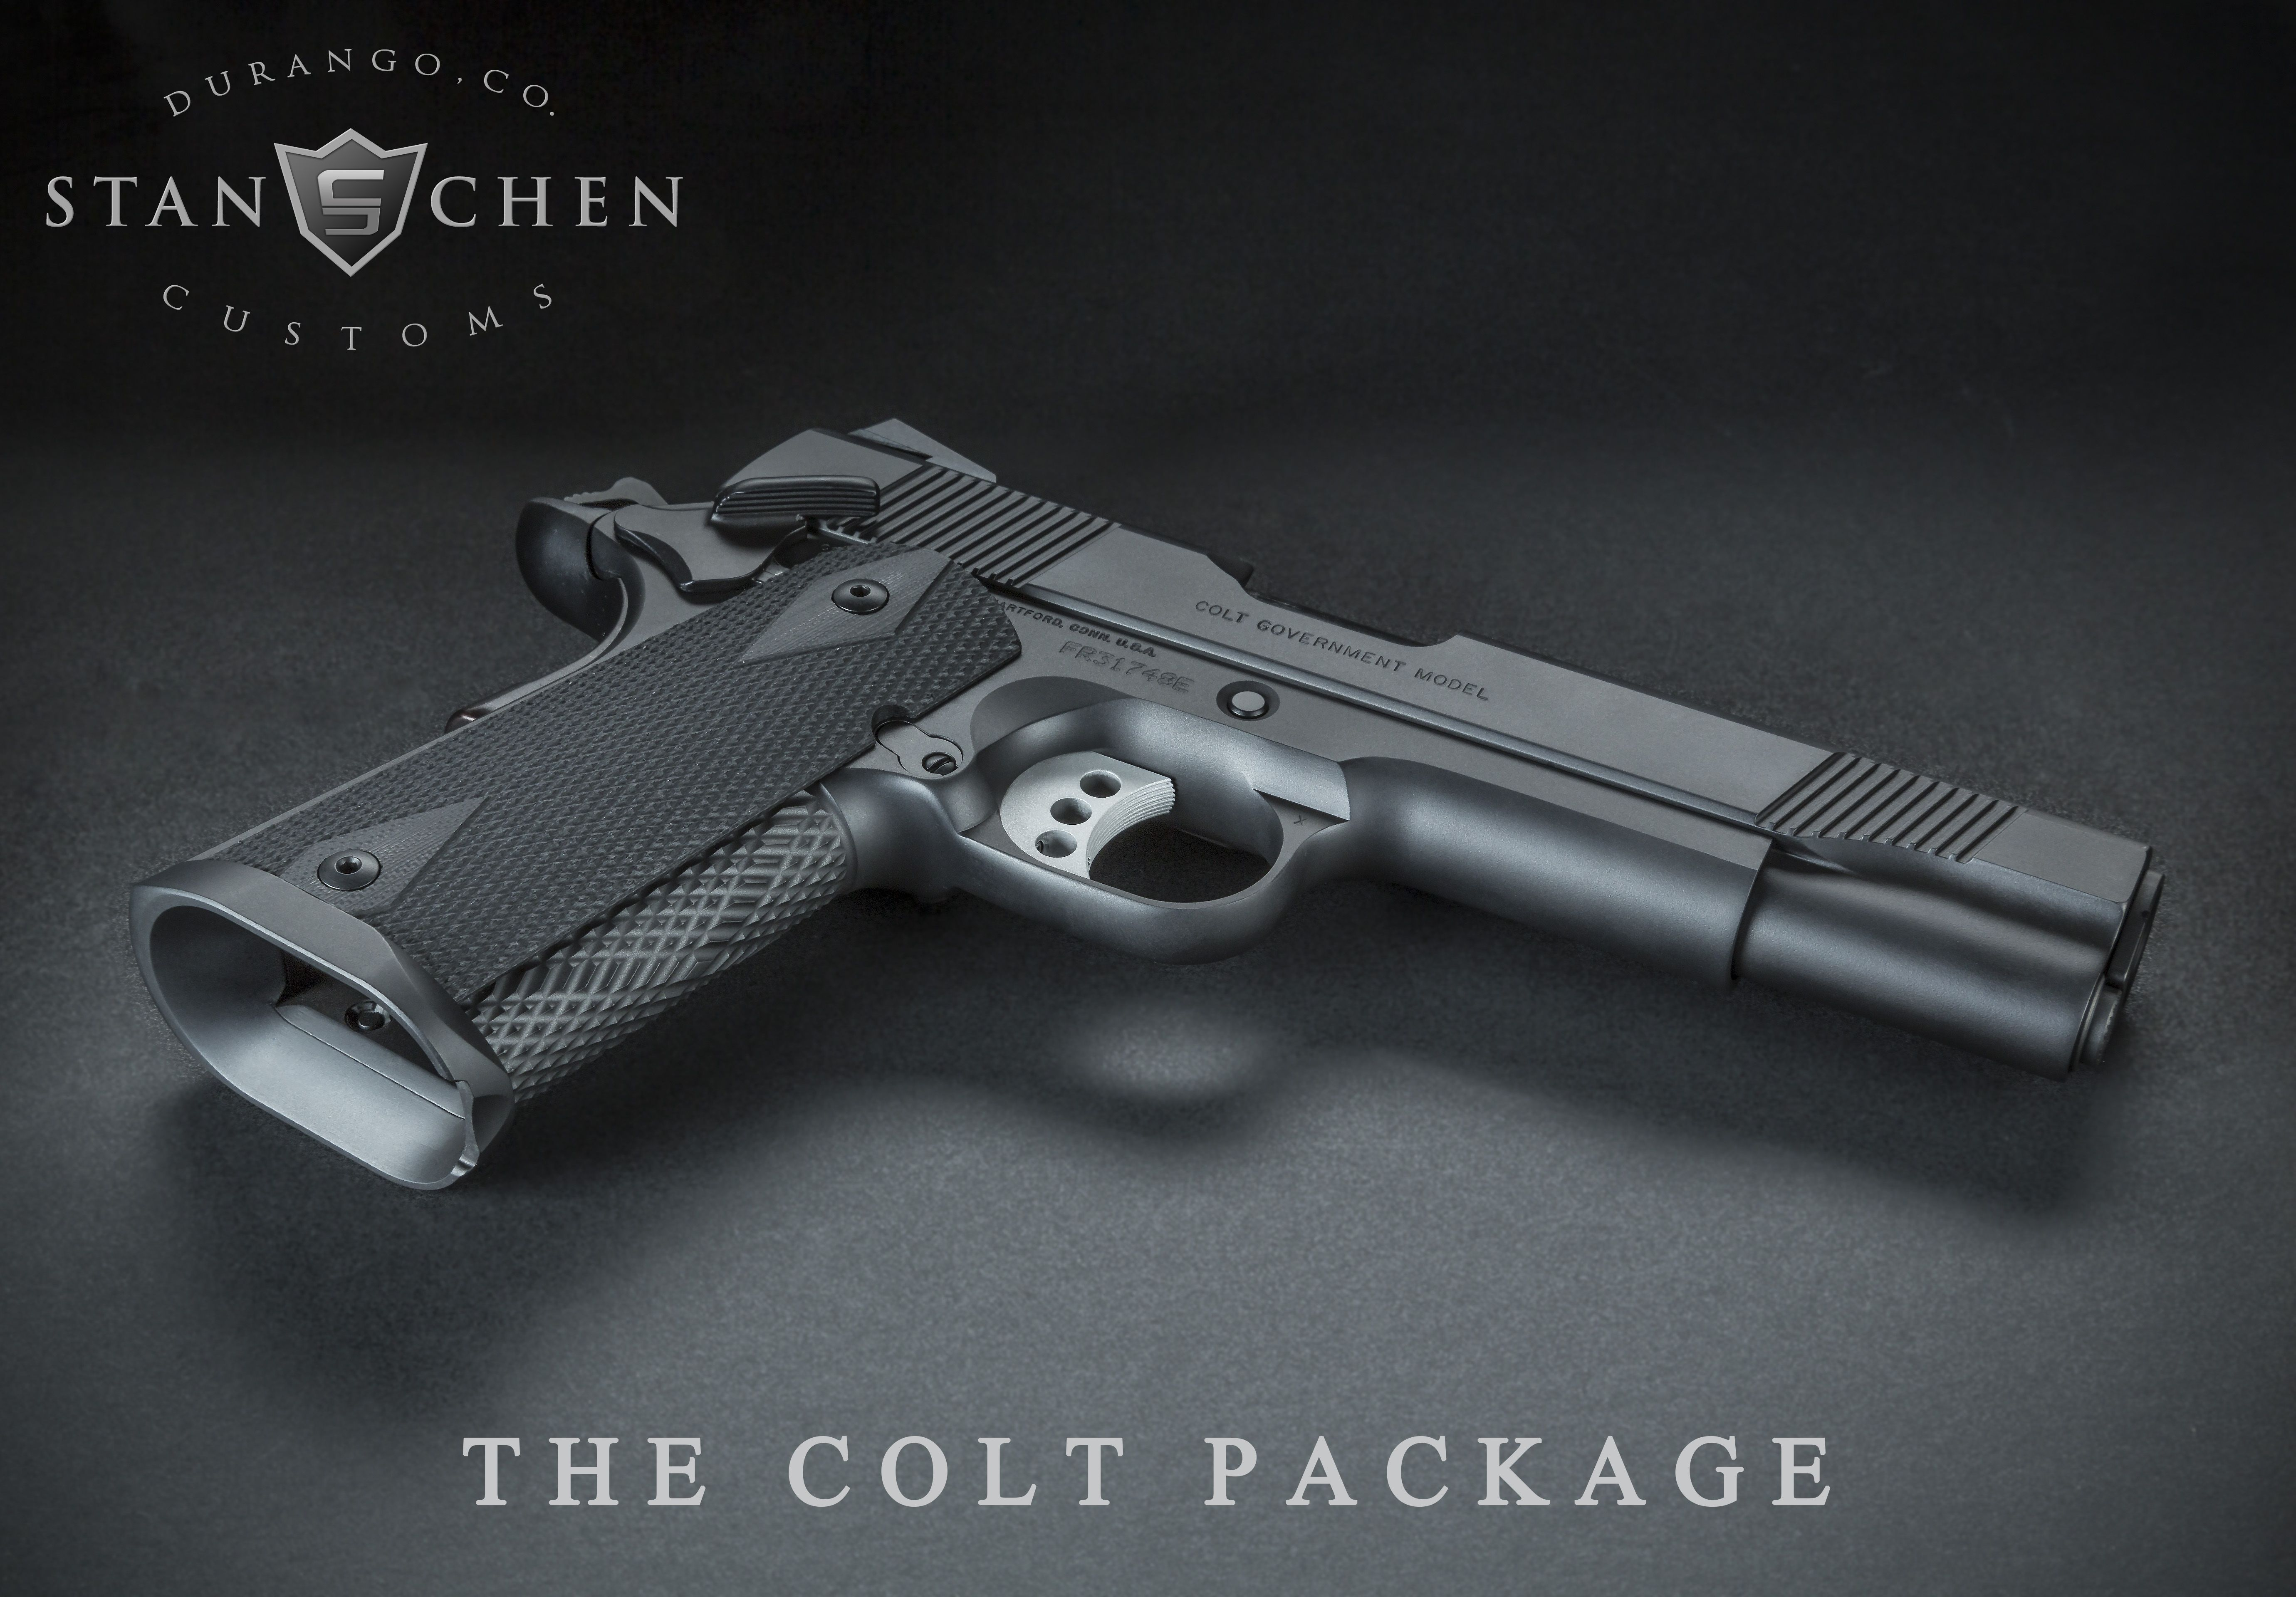 Stan Chen Customs Colt Package Stan Chen Custom Offers Custom